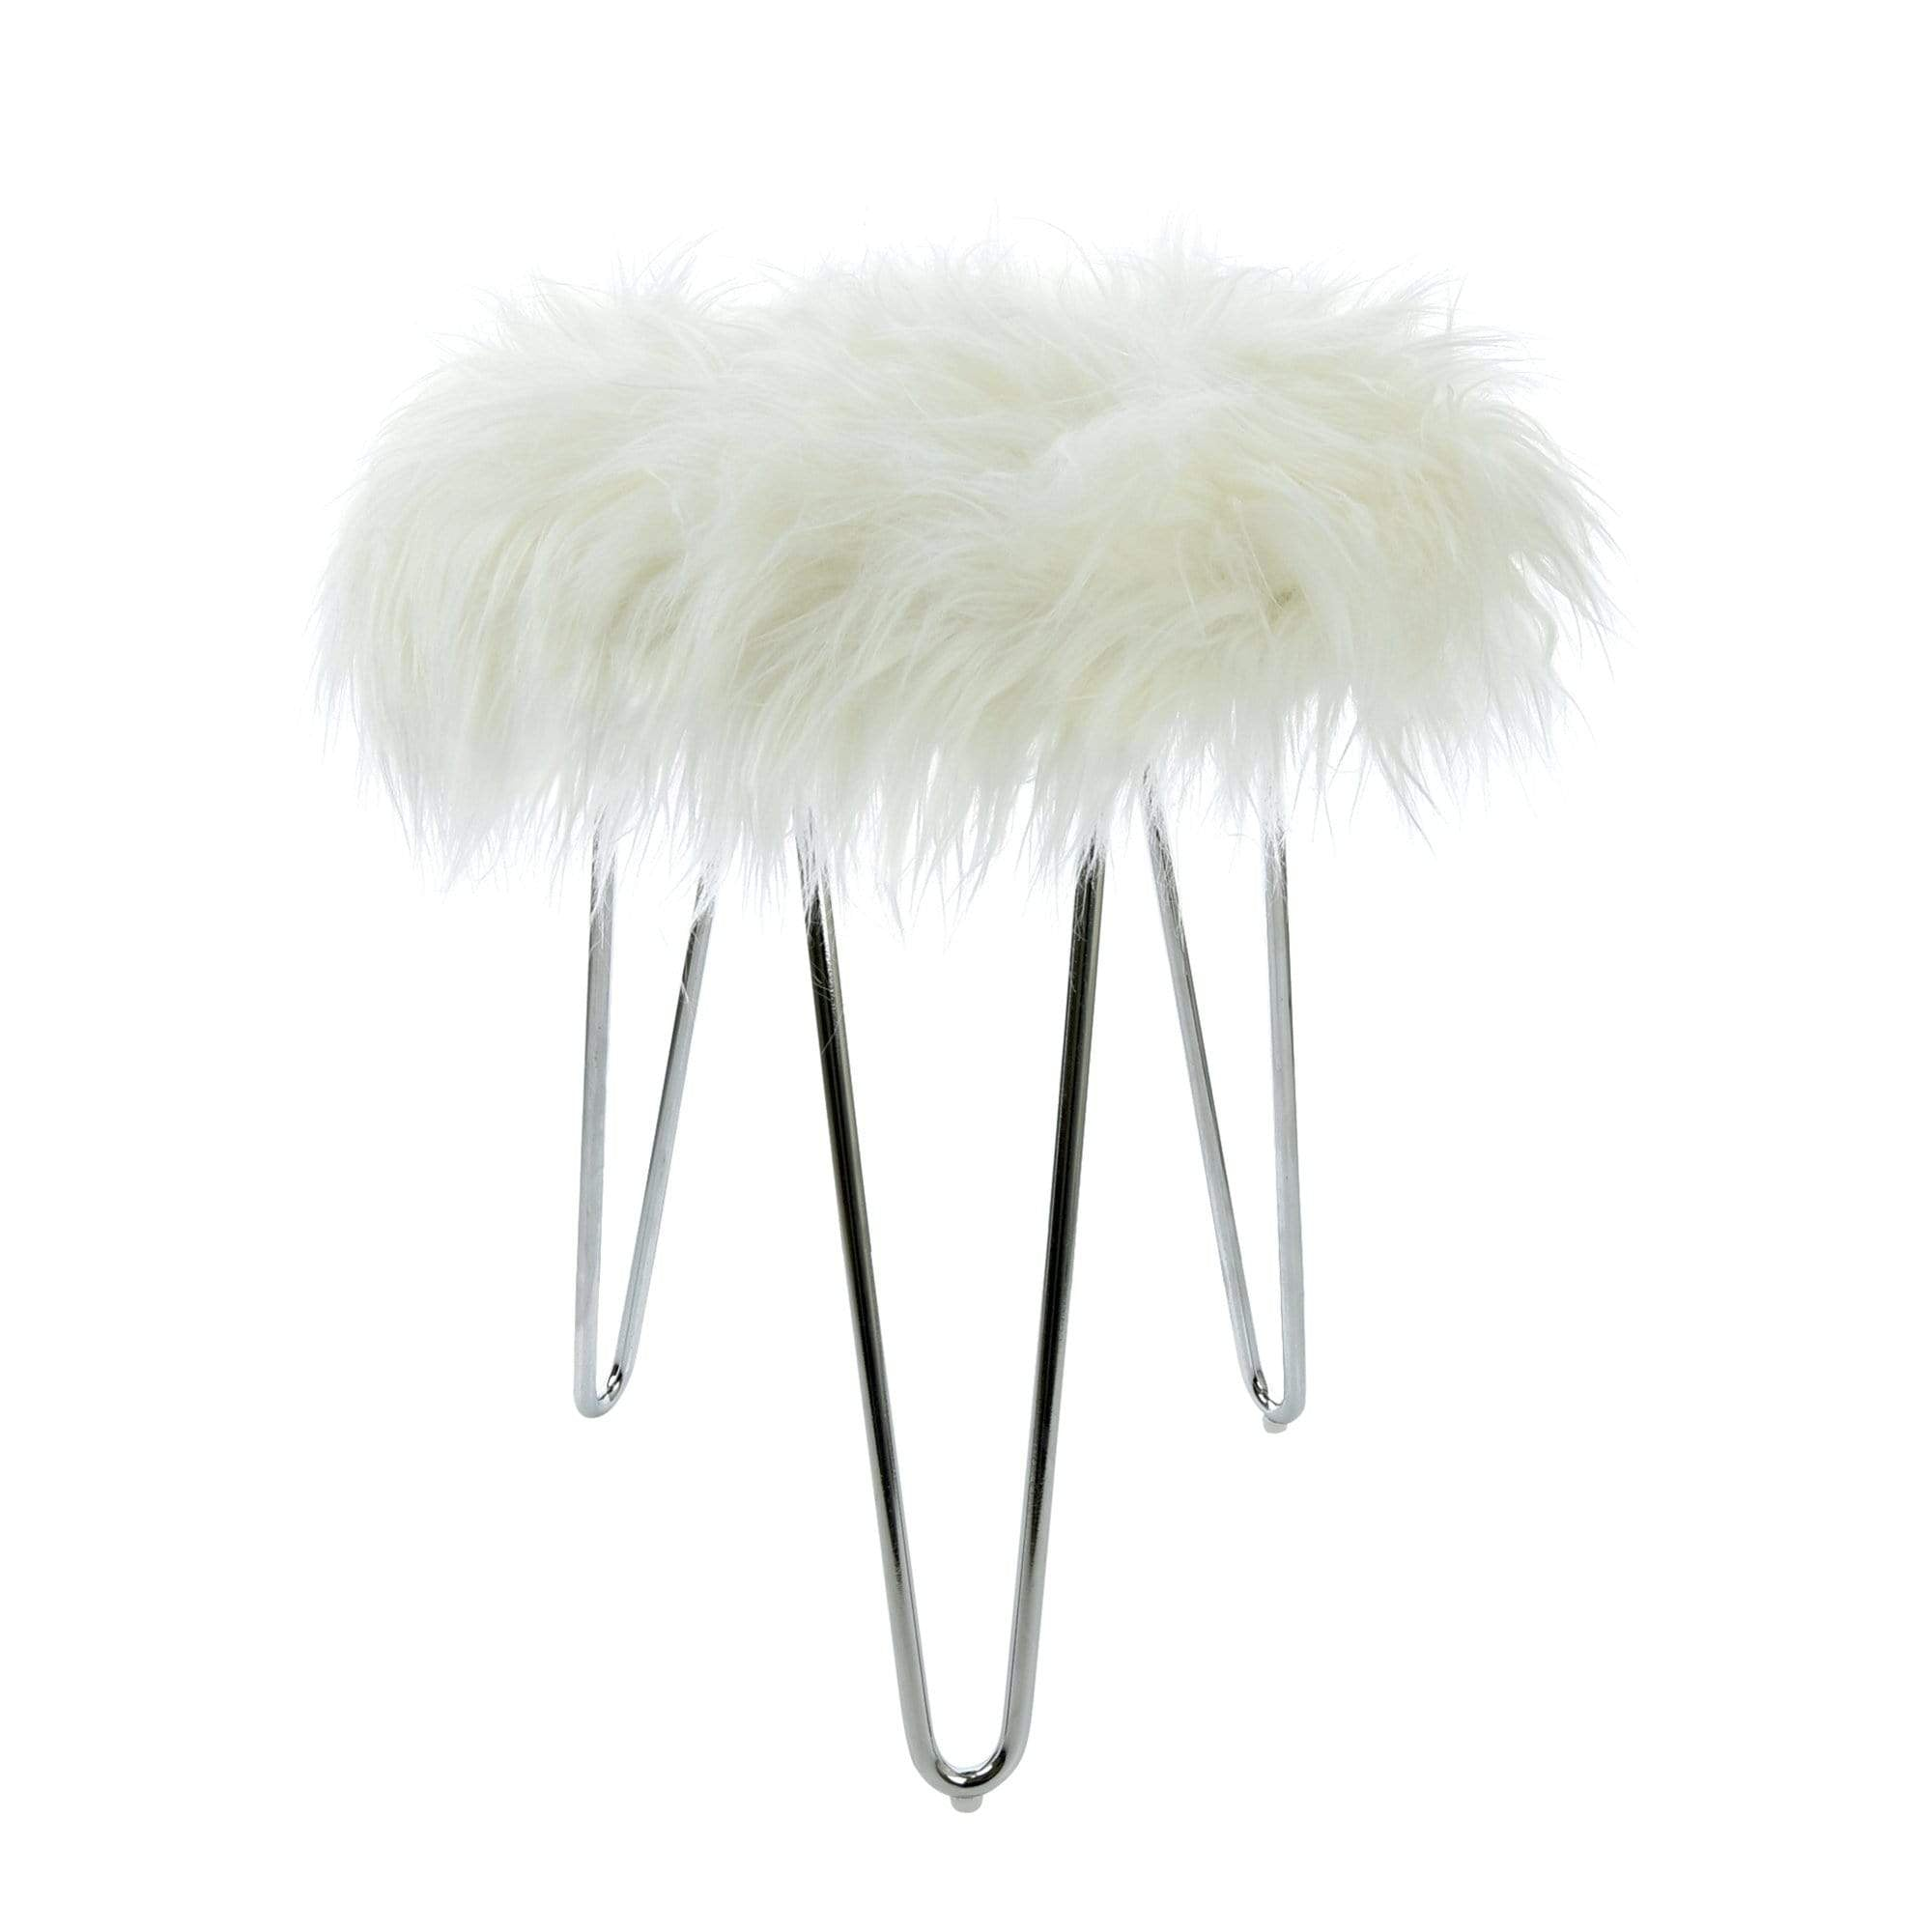 Fluffy Footstool with Chrome Legs White 43cm 1PK